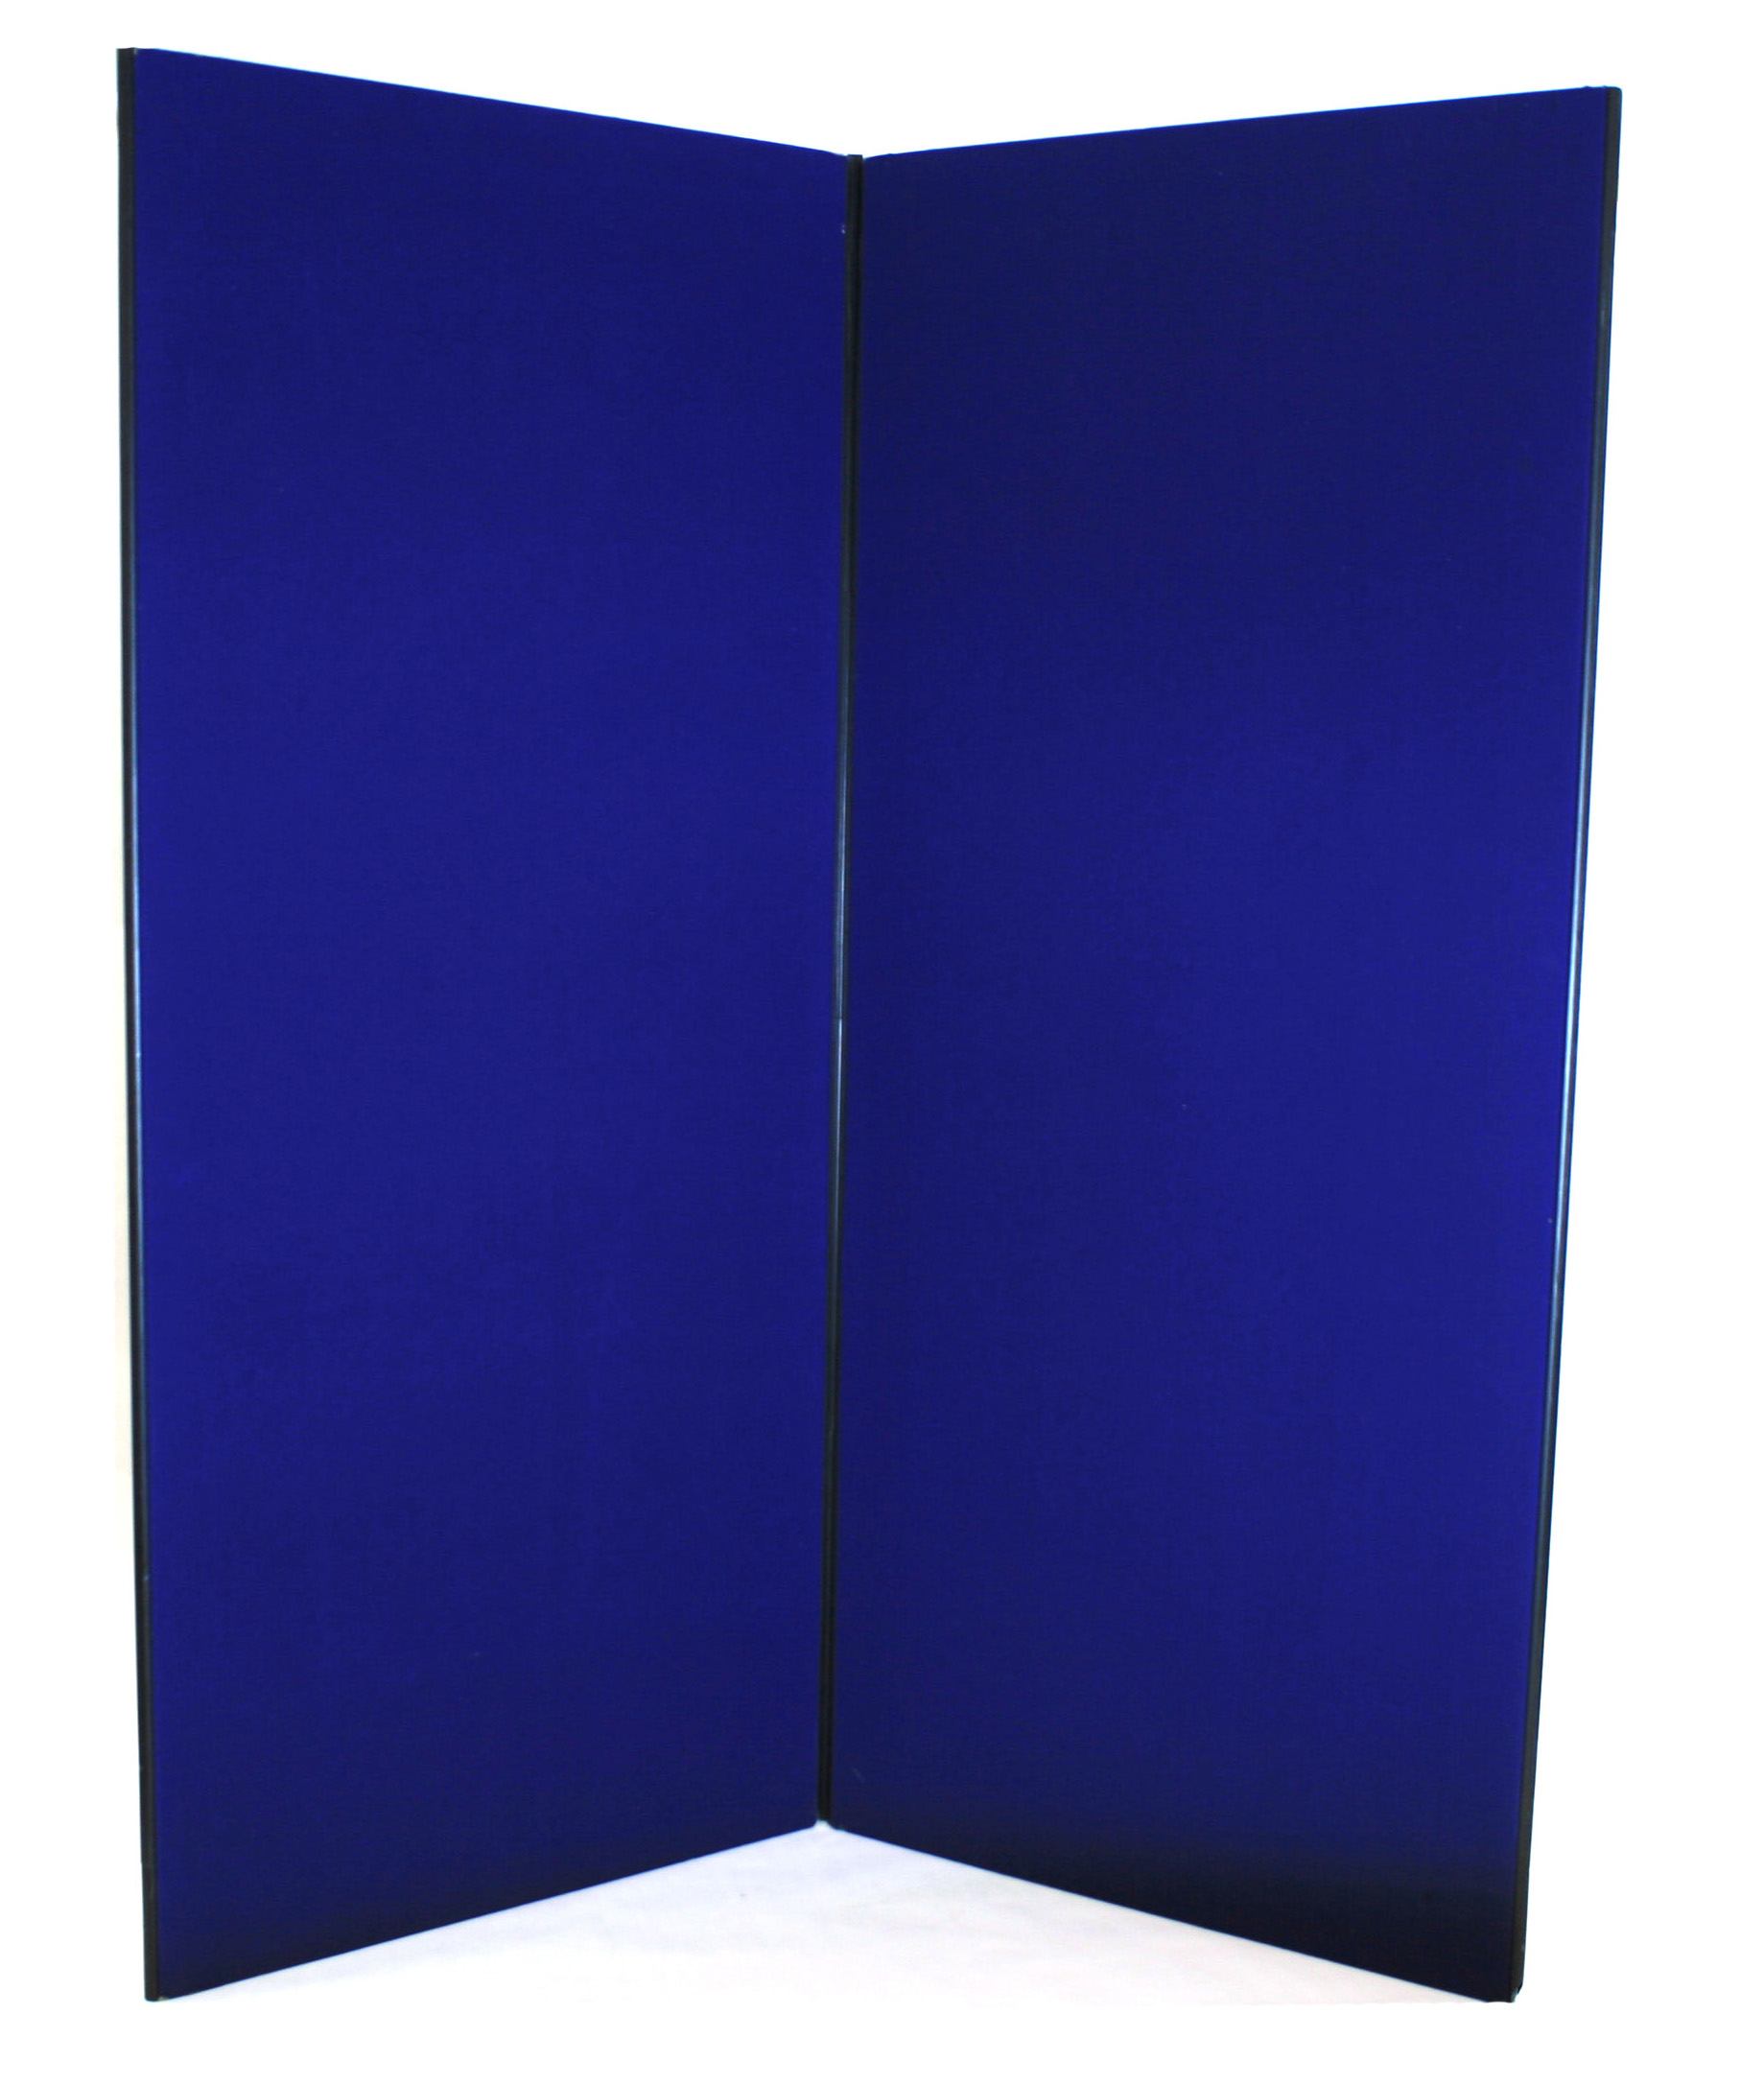 Exhibition panels 2m x 1 m - BE Event Hire